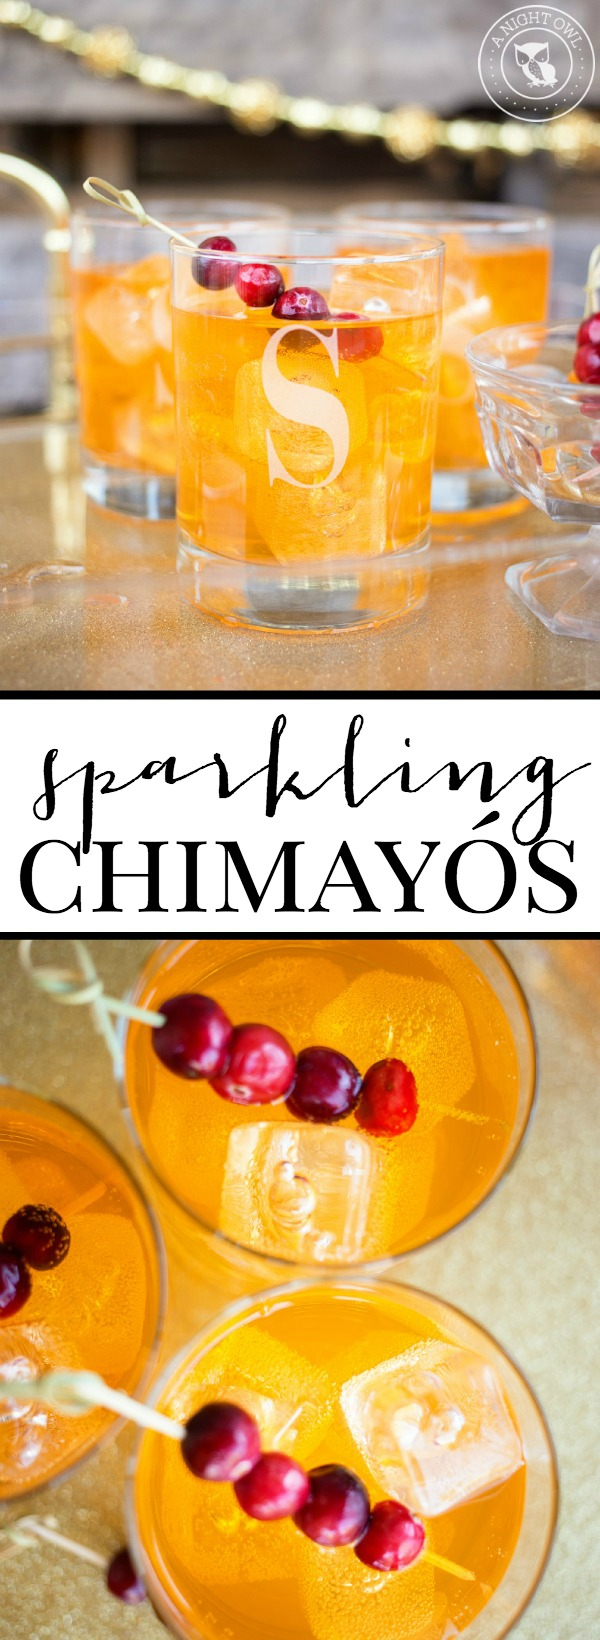 Sparkling Chimayo Cocktail | anightowlblog.com